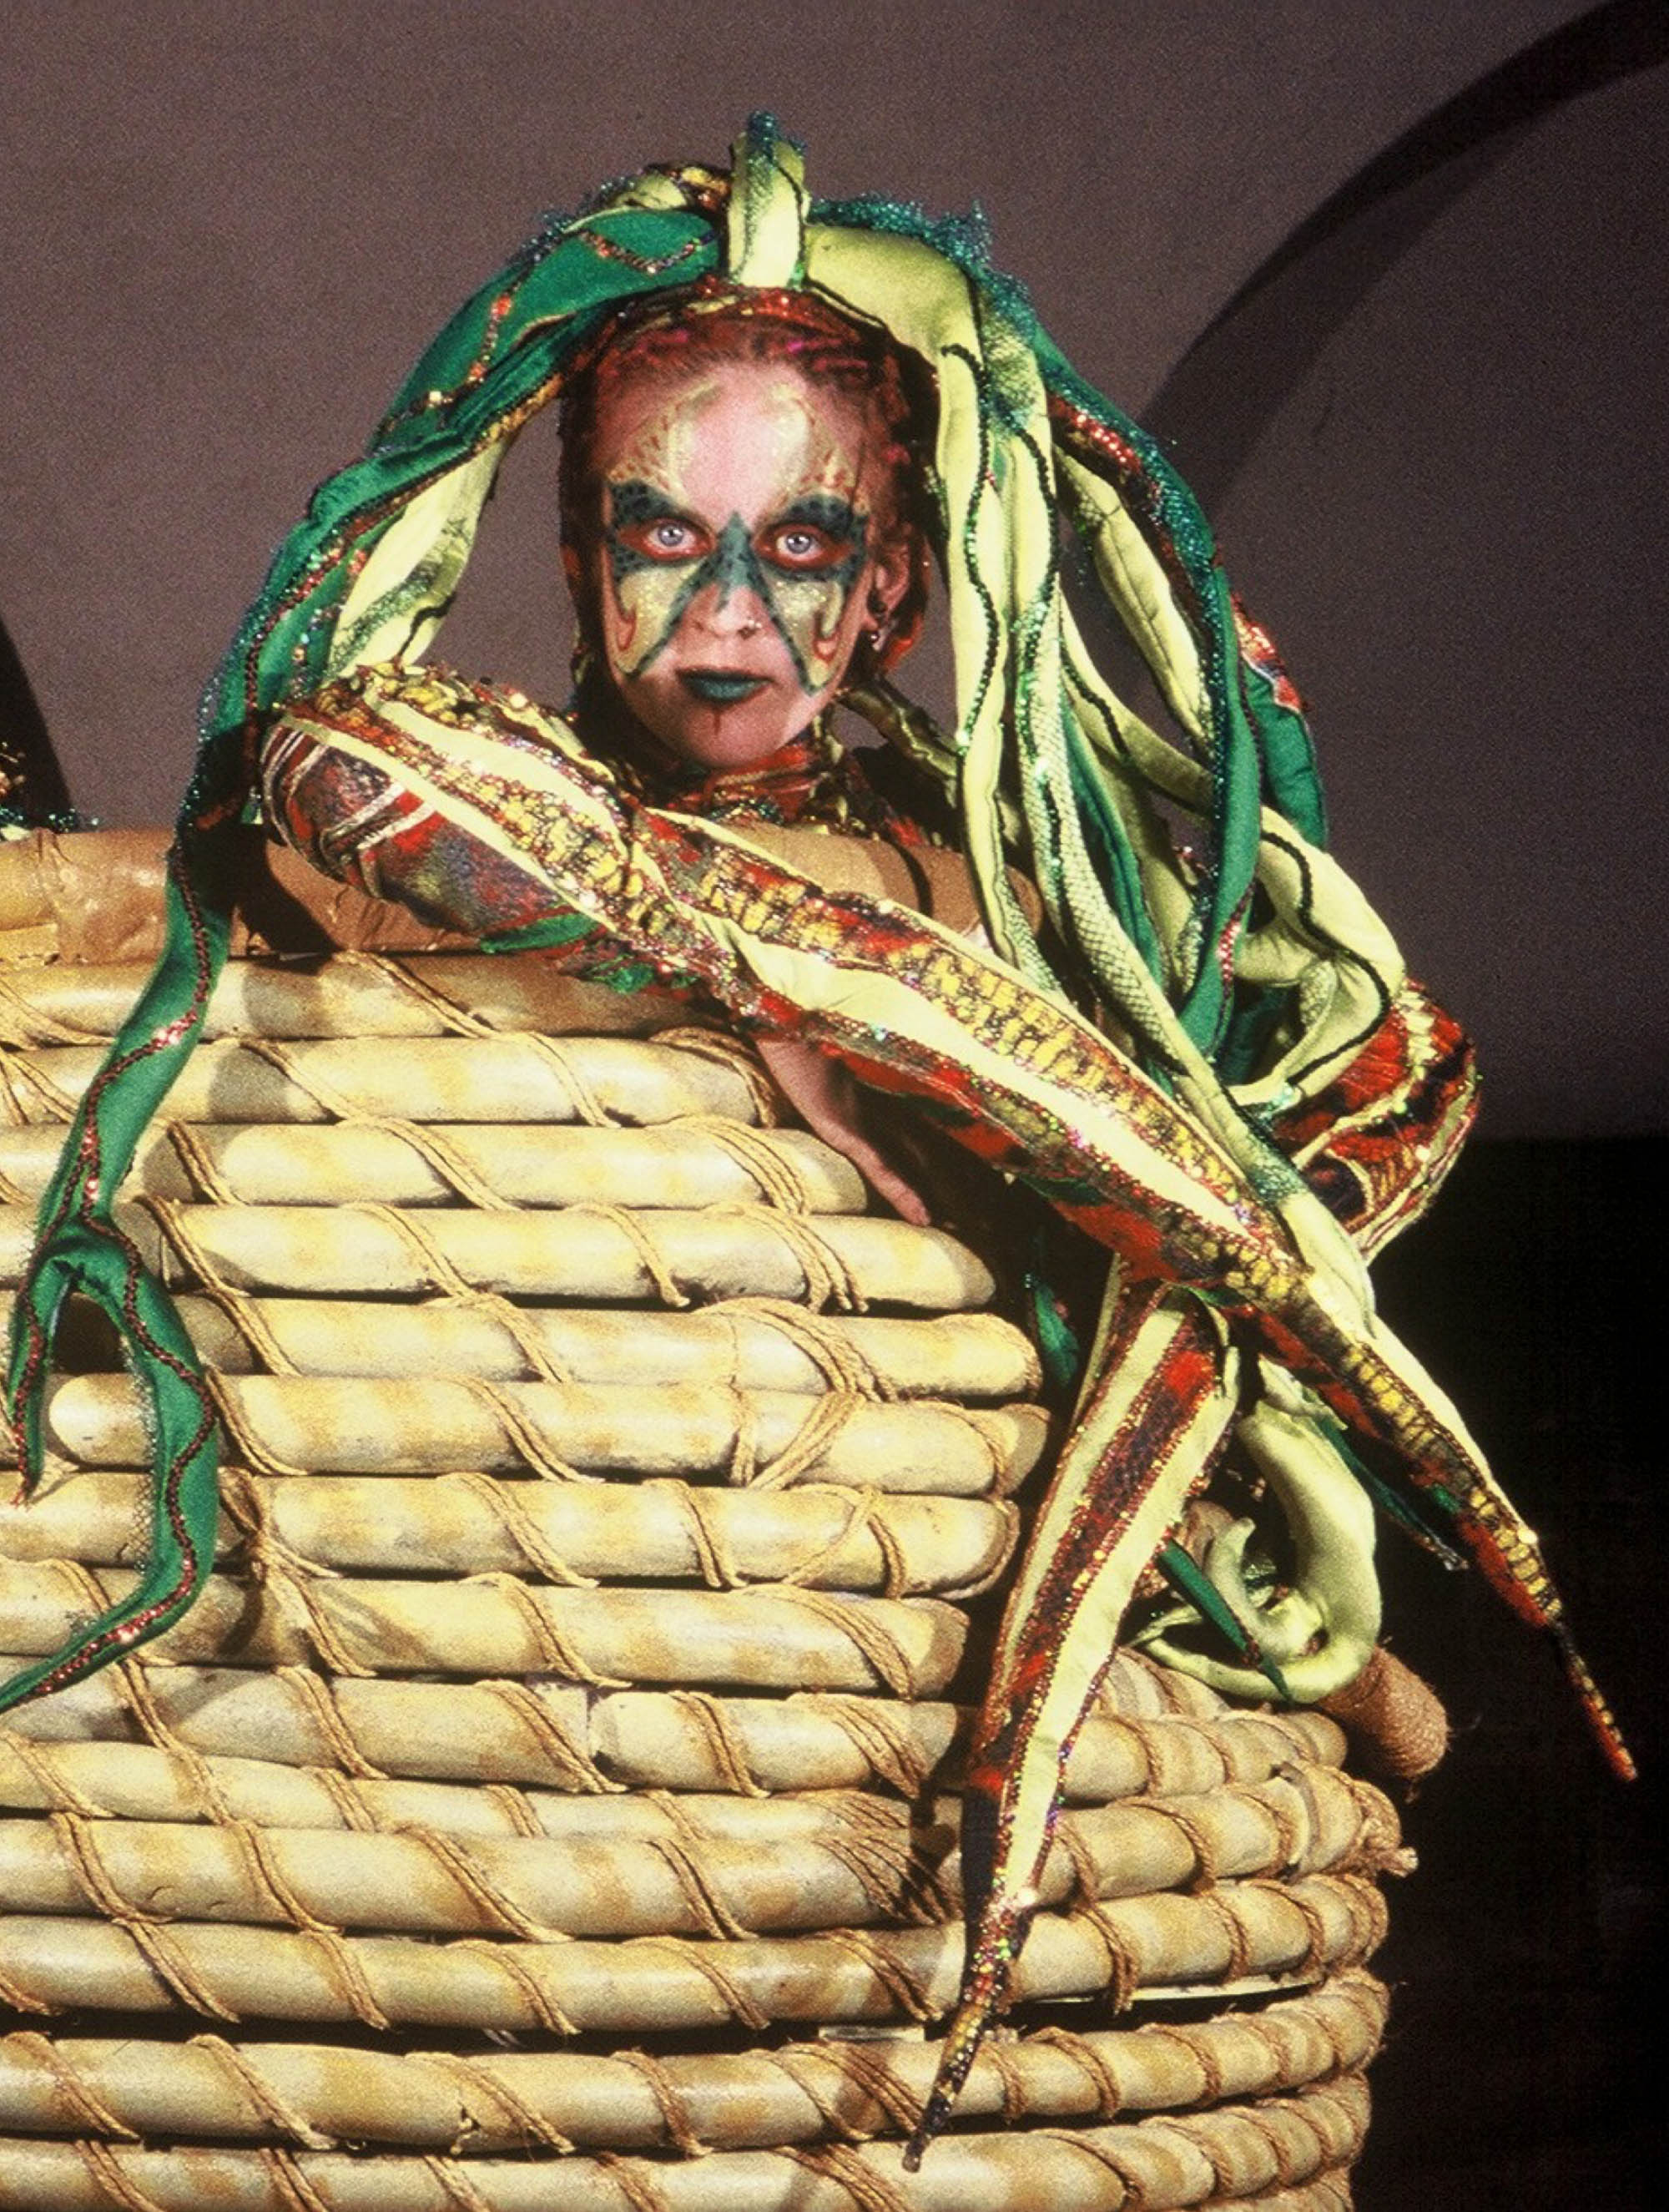 'Snake woman' from the show 'Rubicon'